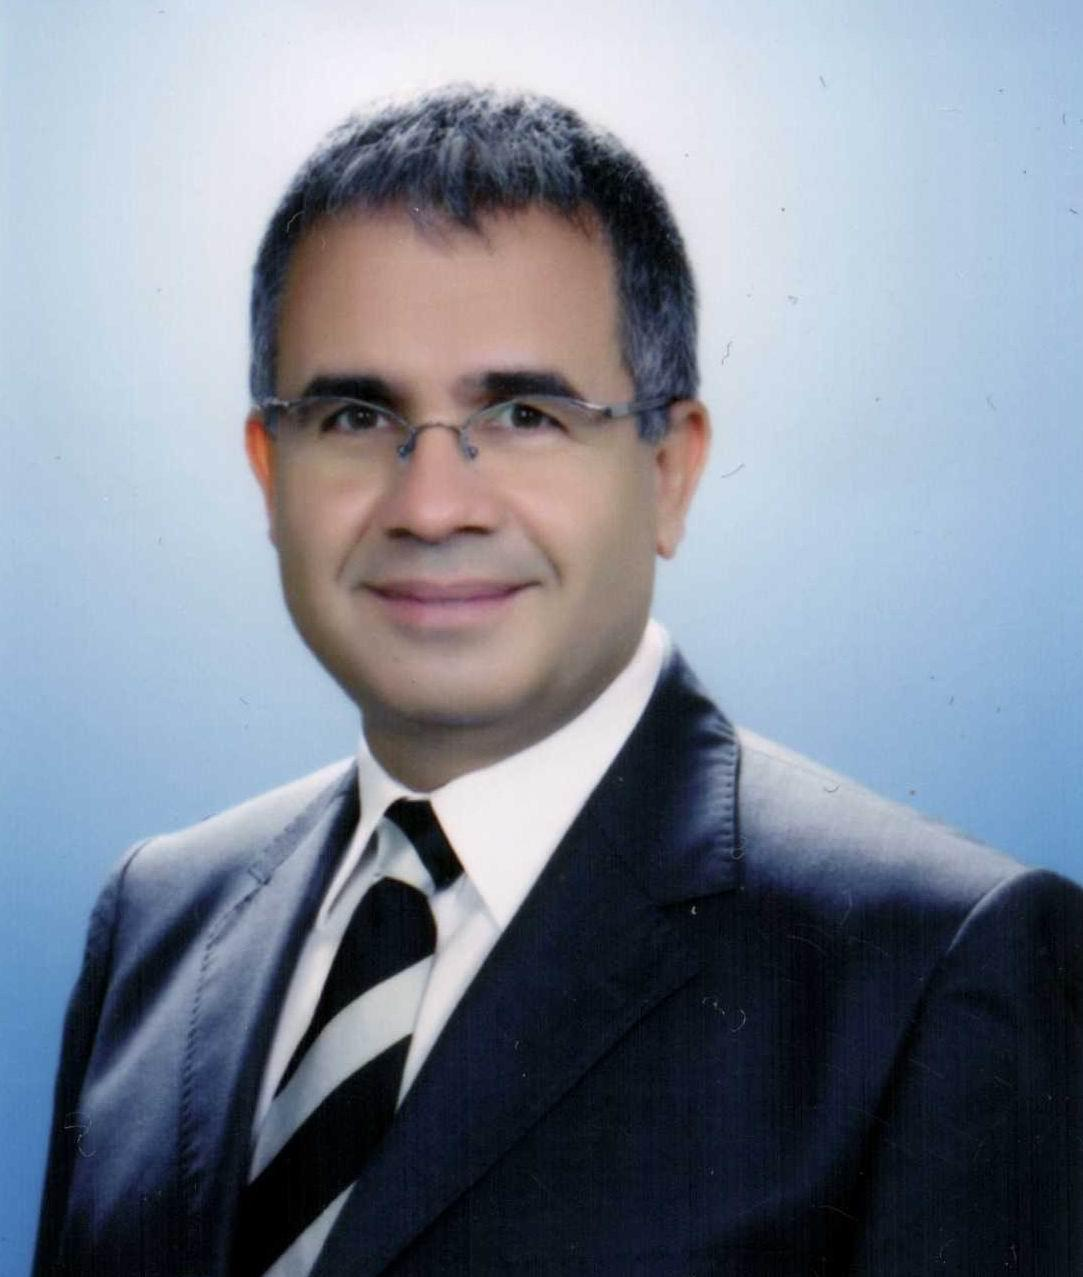 Ergin GÜL